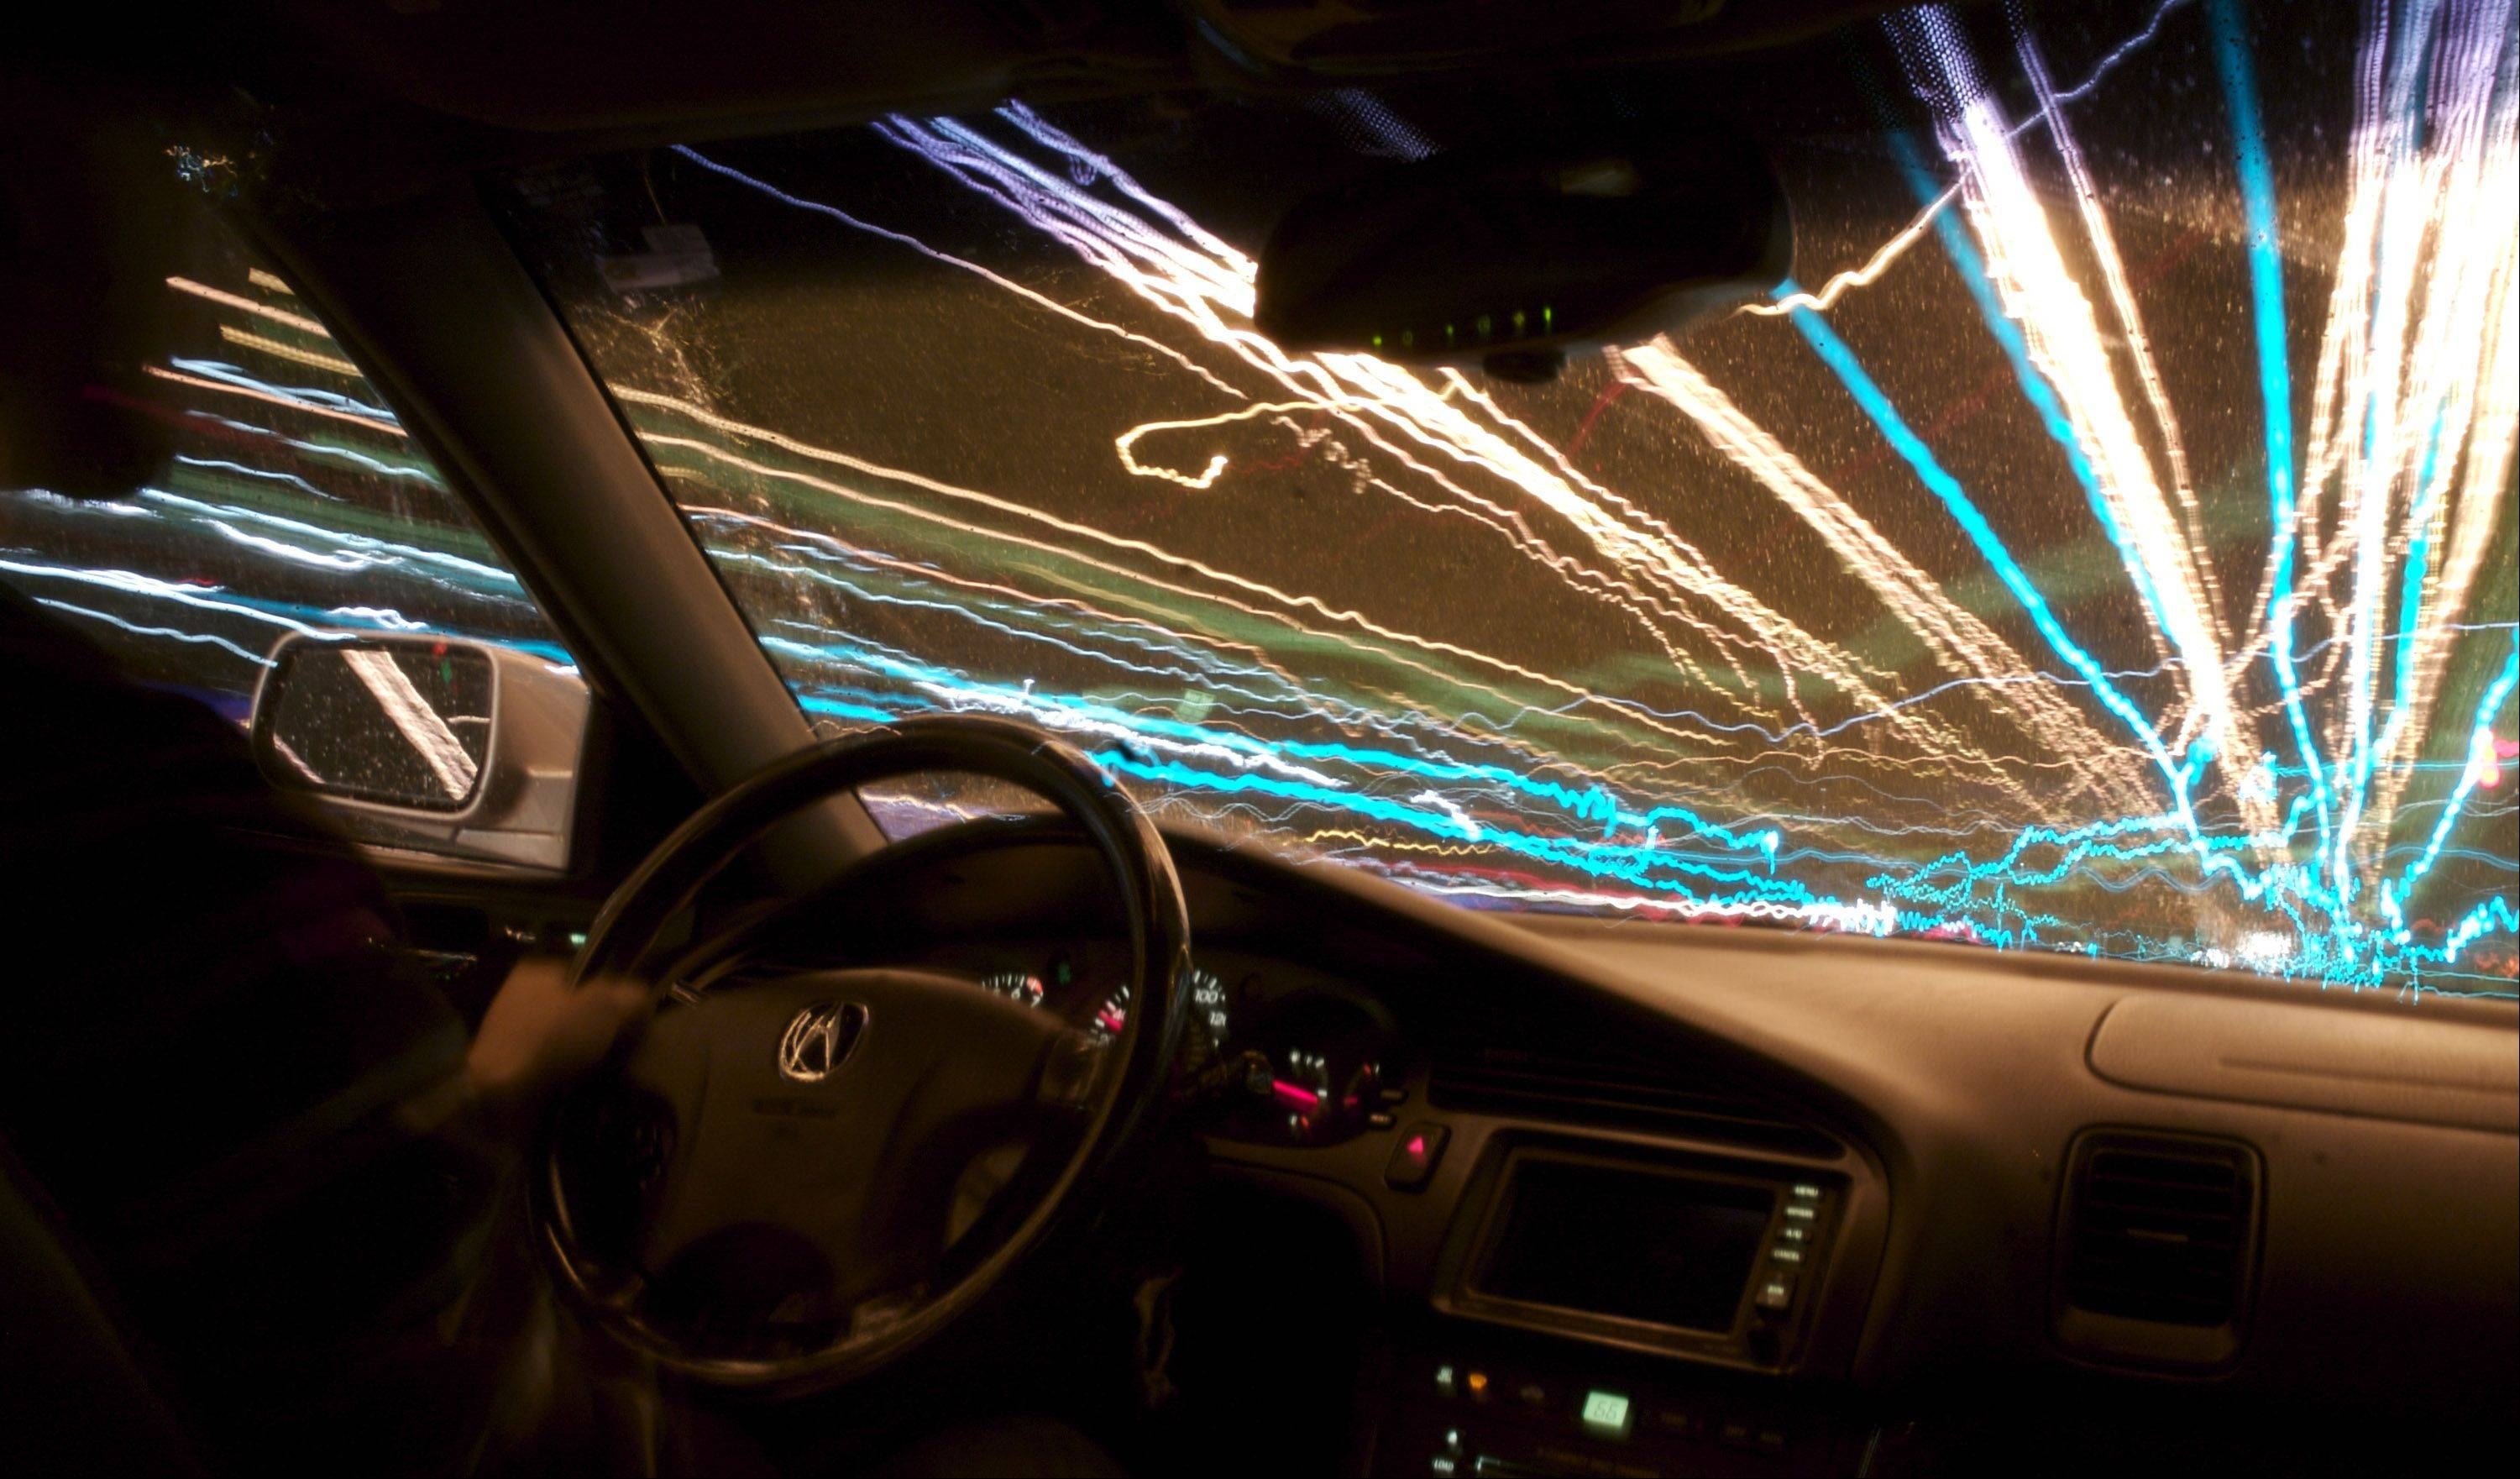 My submission is of a long exposure taken in my car while I was driving in Naperville. The photograph was taken with a Sigma f3.5 18-200 lens mounted to a Canon 30D with a cable shutter release.